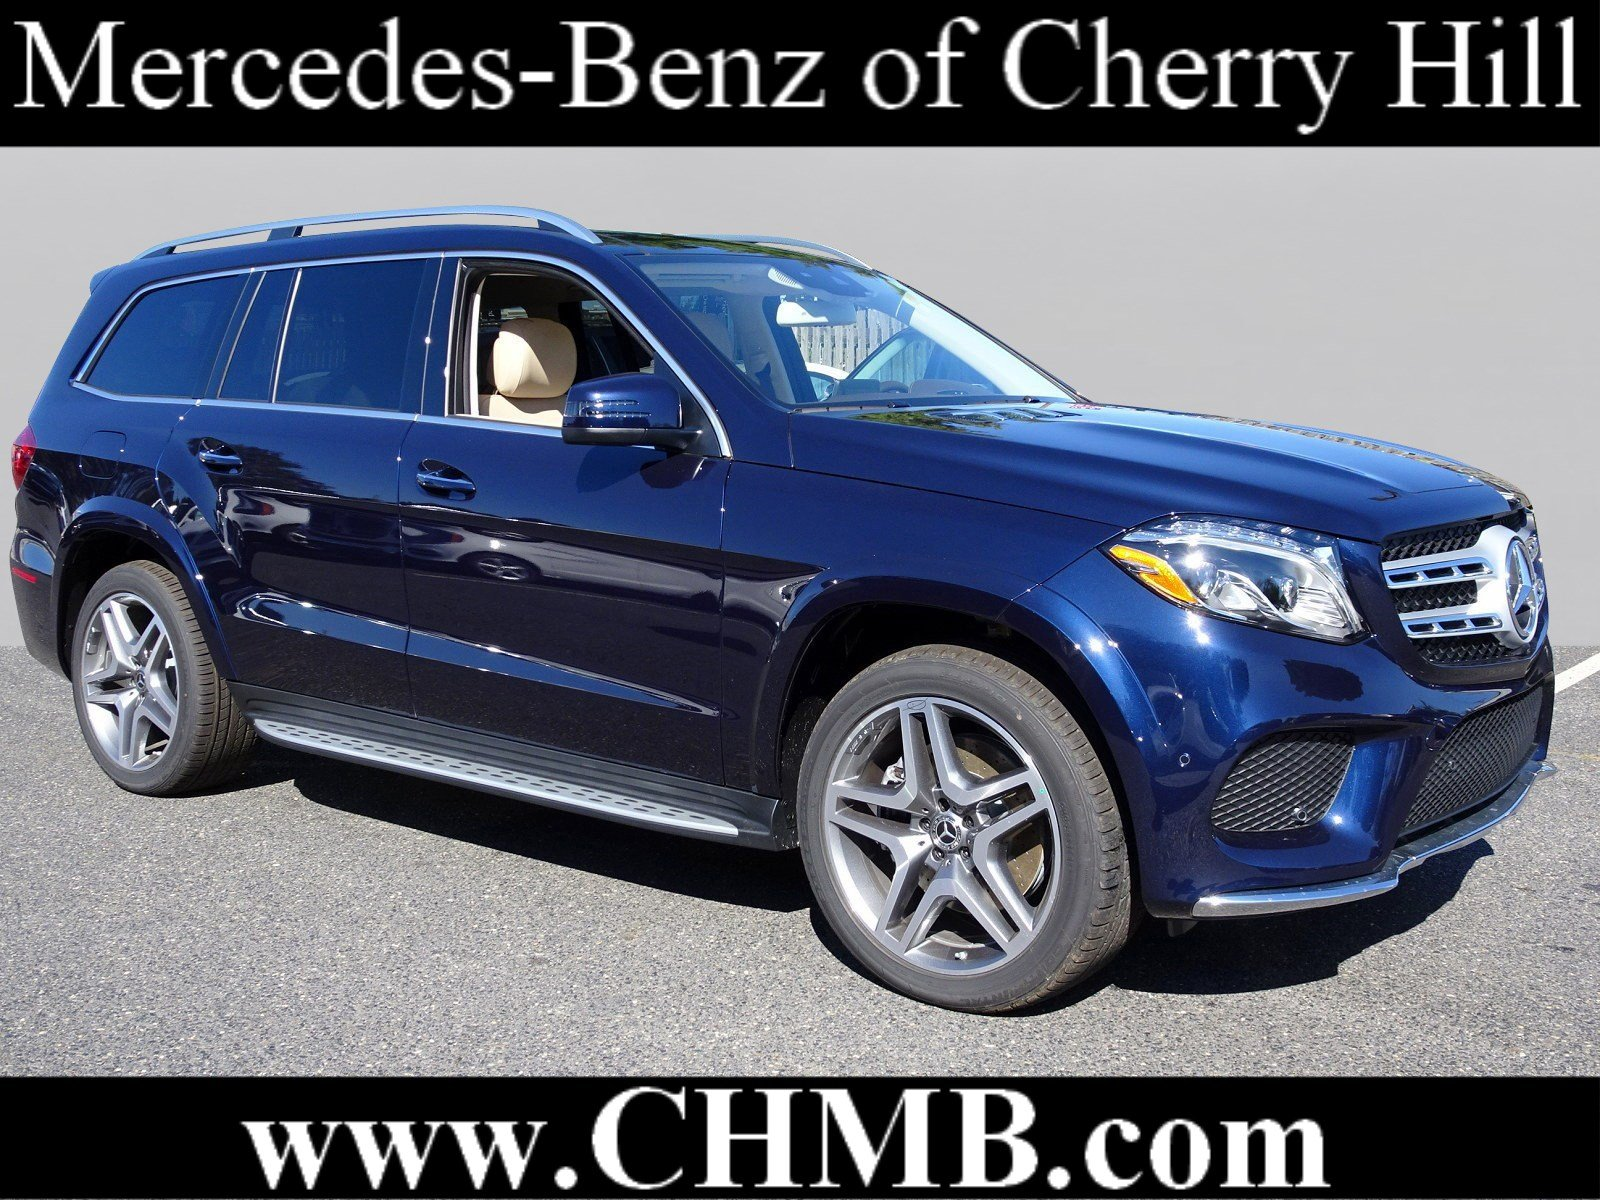 New 2019 Mercedes Benz GLS GLS 550 SUV in Cherry Hill M2387